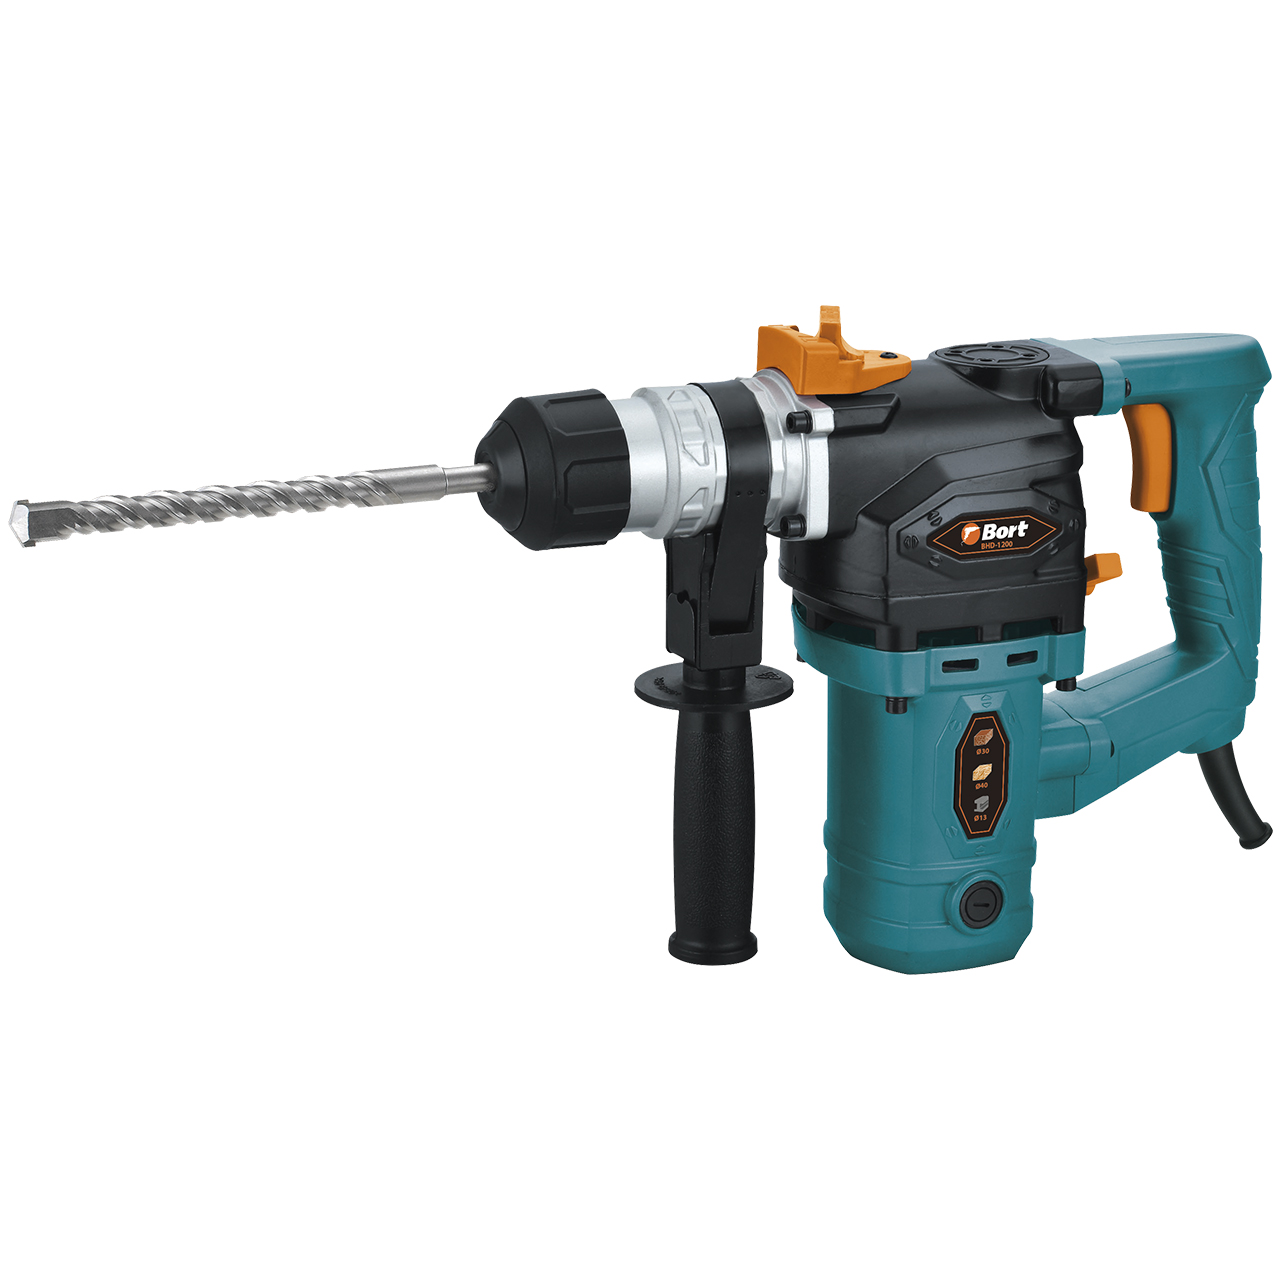 Electric hammer drill BHD-1200 (Power 1100 W, speed from 0 to 800 tricks, 4000 beats per minute) electric hammer drill diold прэ 9 power 1500 w speed from 0 to 750 rpm